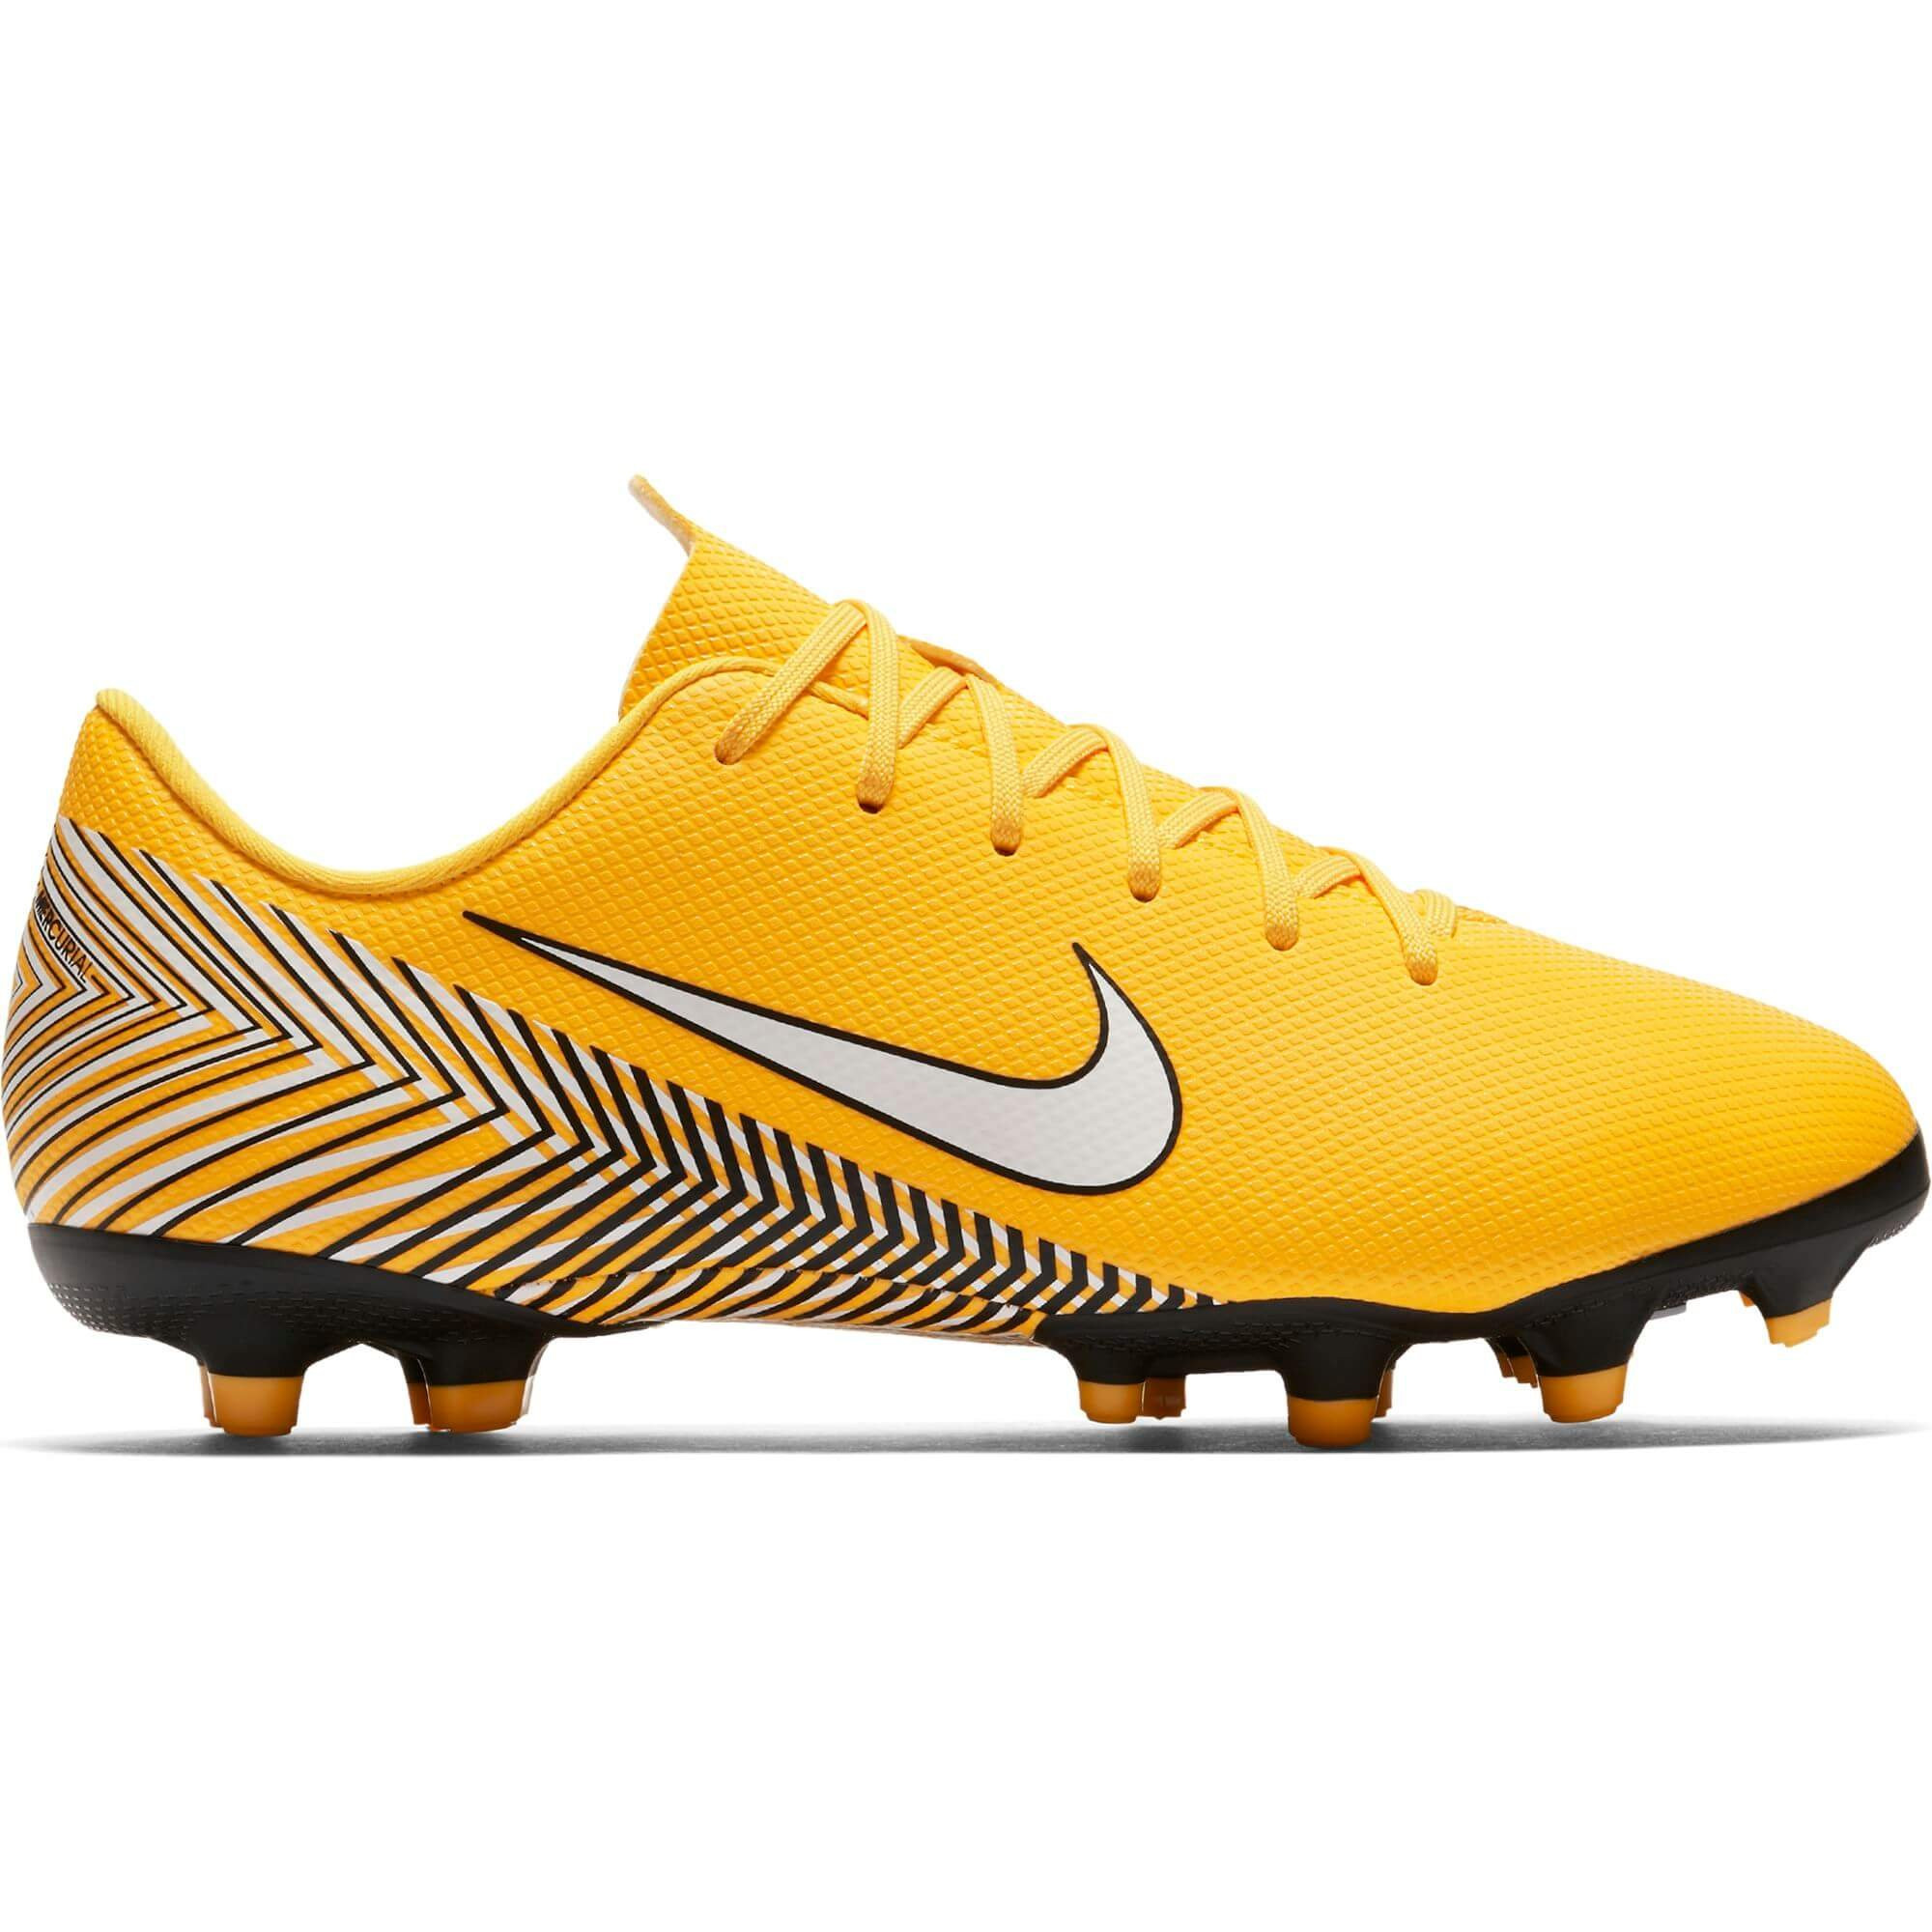 reputable site 40d1e 7524b ... cheapest nike mercurial vapor 12 aca njr mg jr jaune 27b35 d23a6